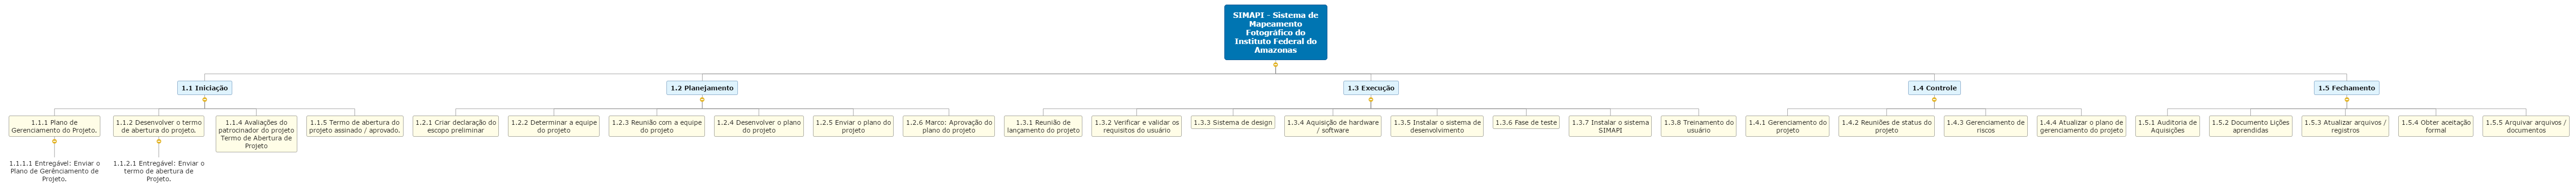 SIMAPI - Sistema de Mapeamento Fotográfico do Instituto Federal do Amazonas1 Mind Map